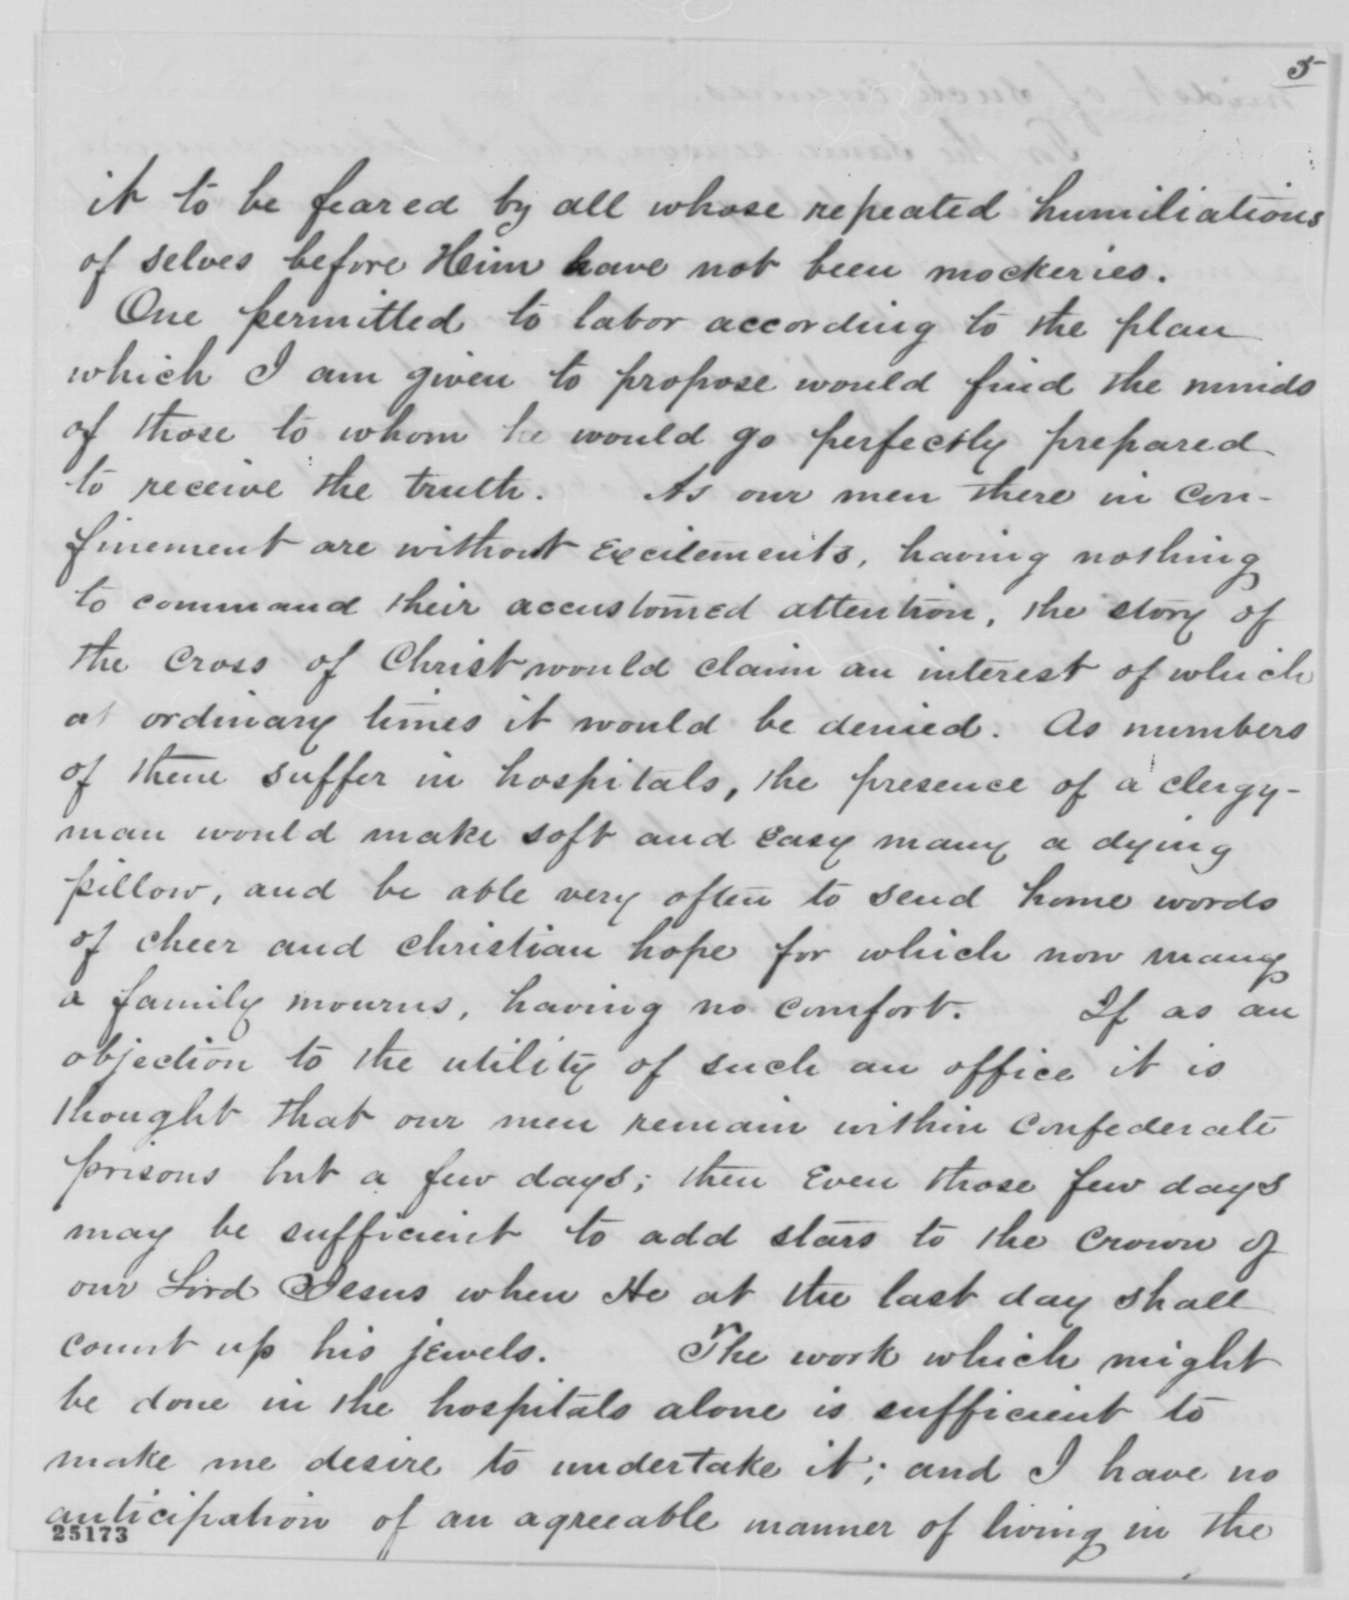 Joseph H. Bradley to Abraham Lincoln, Tuesday, July 28, 1863  (Minister for prisoners of war in Richmond)